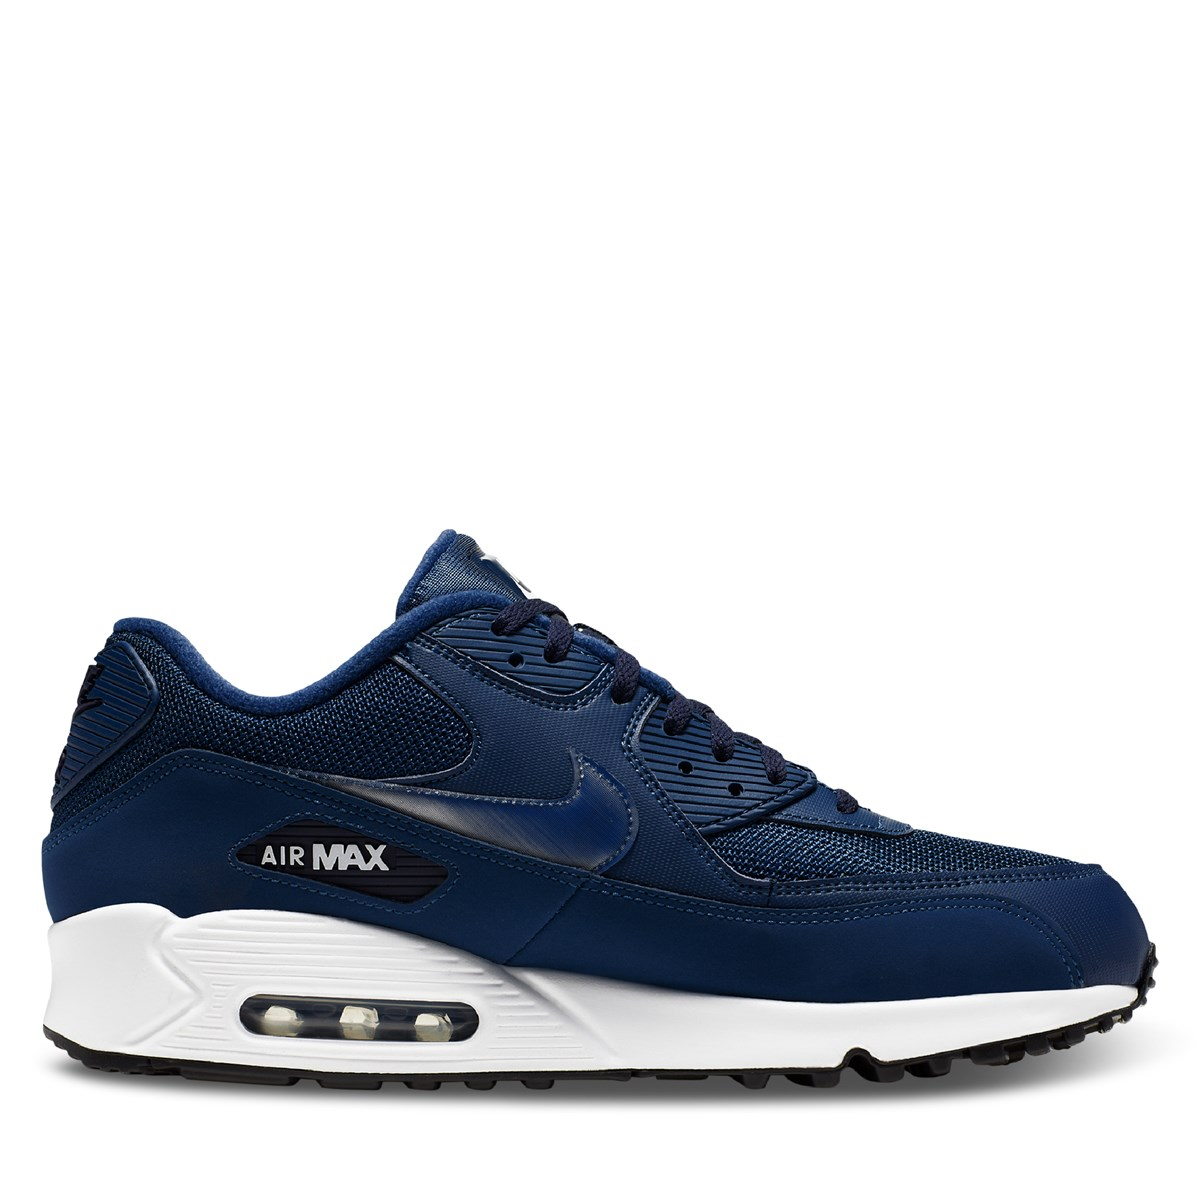 Men's Air Max 90 Sneakers in Blue